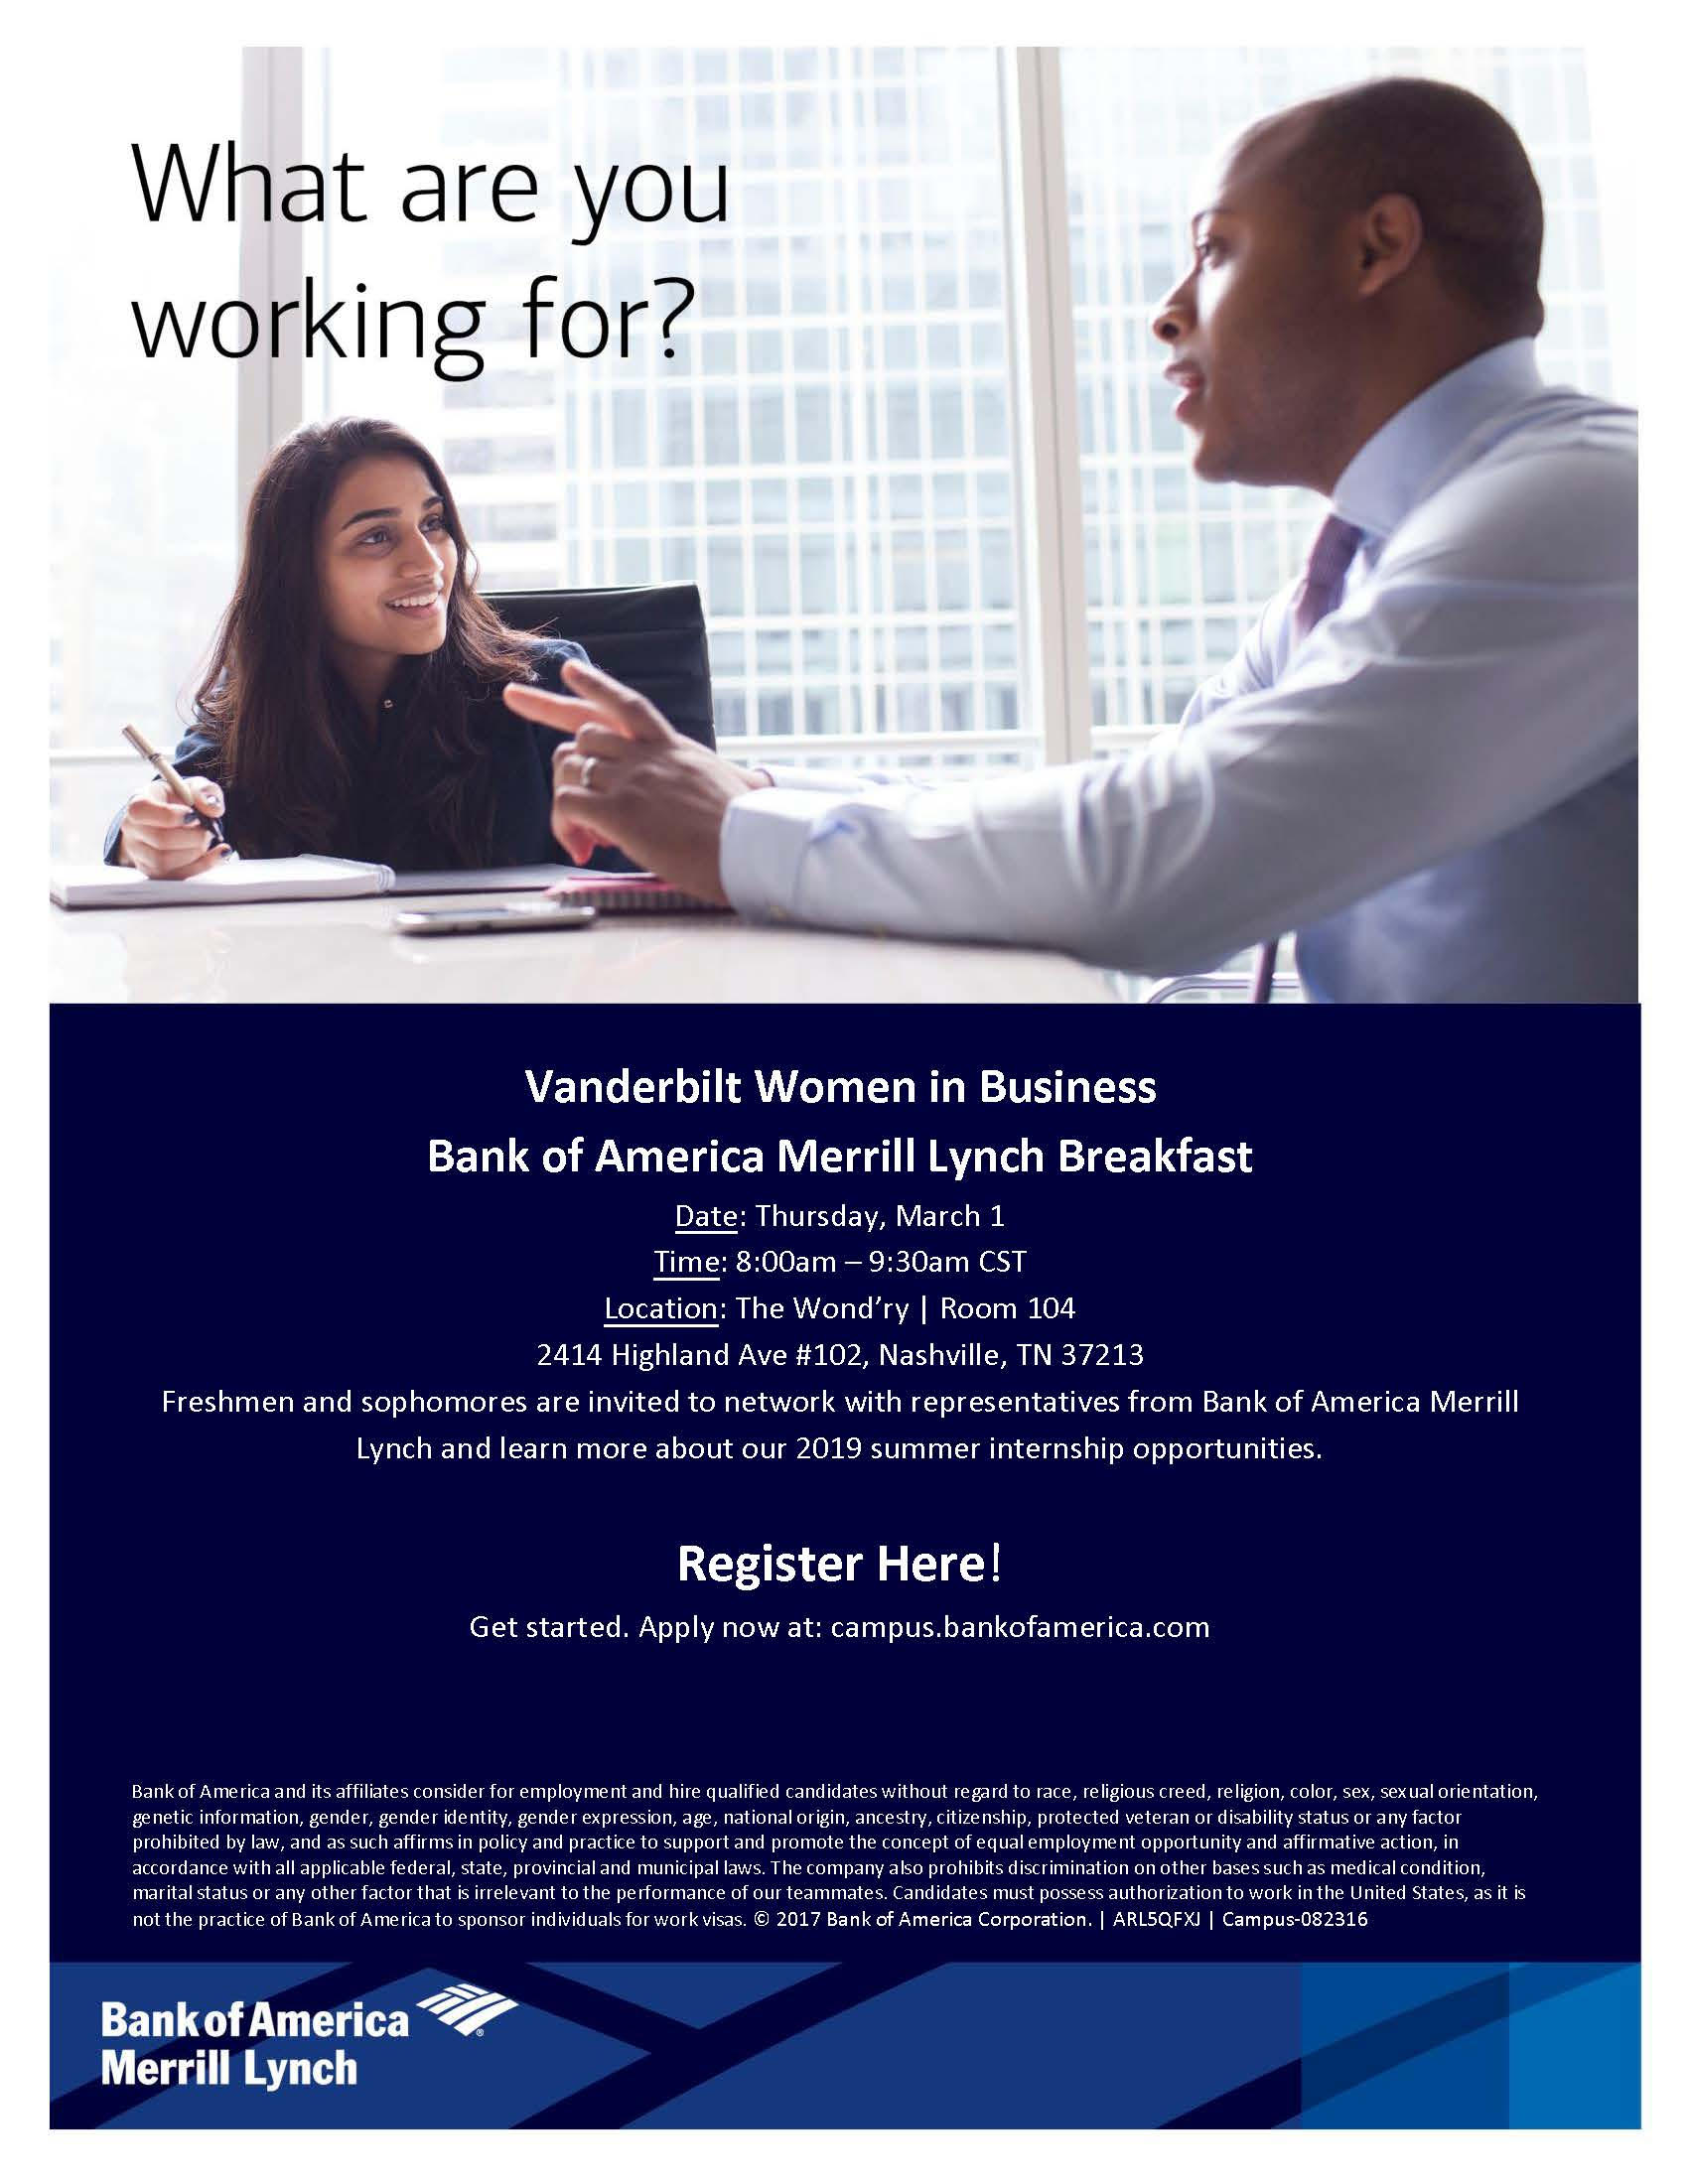 BofAML-Breakfast-3 1-Women-in-Business - the Wond'ry | Vanderbilt